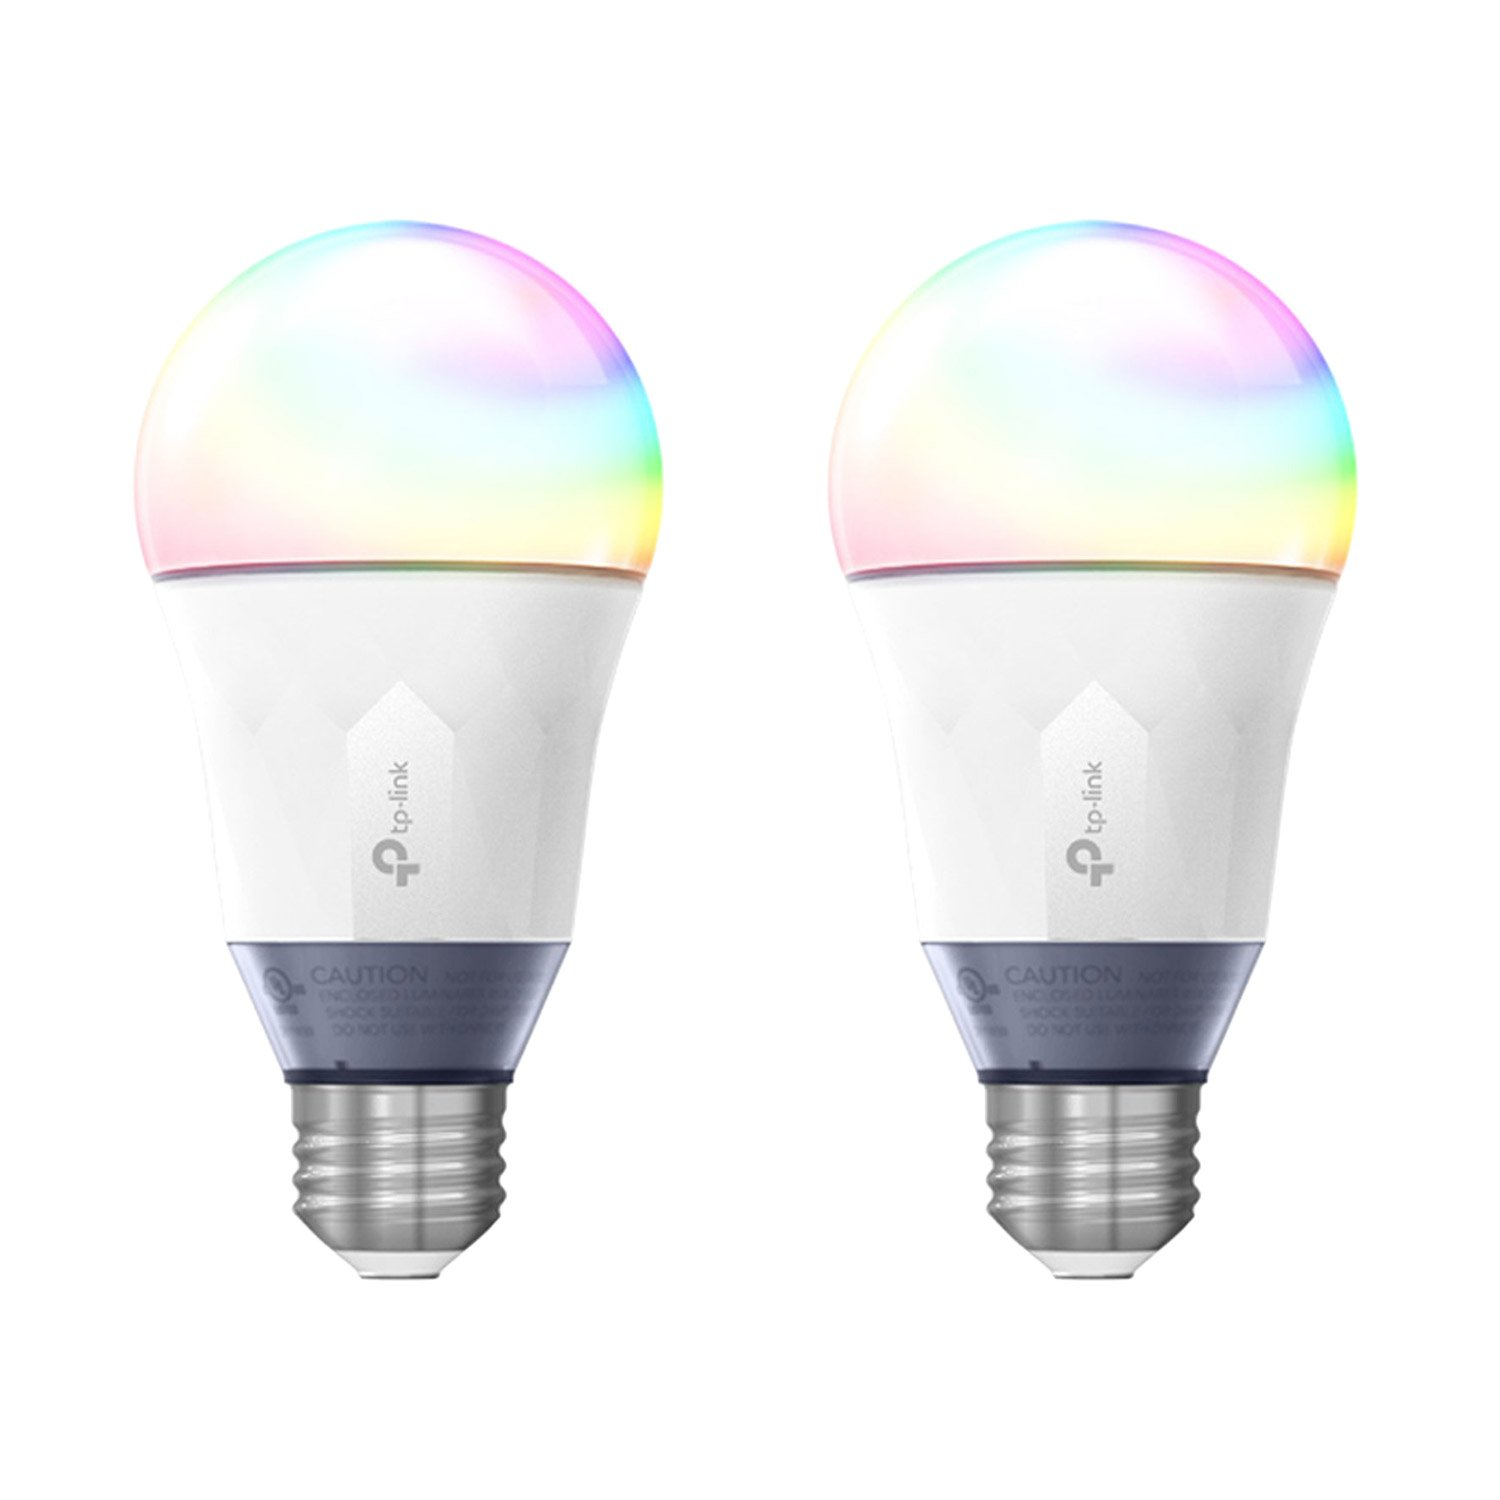 2 Pack TP-Link Smart WiFi LED Bulb with Color Changing Hue